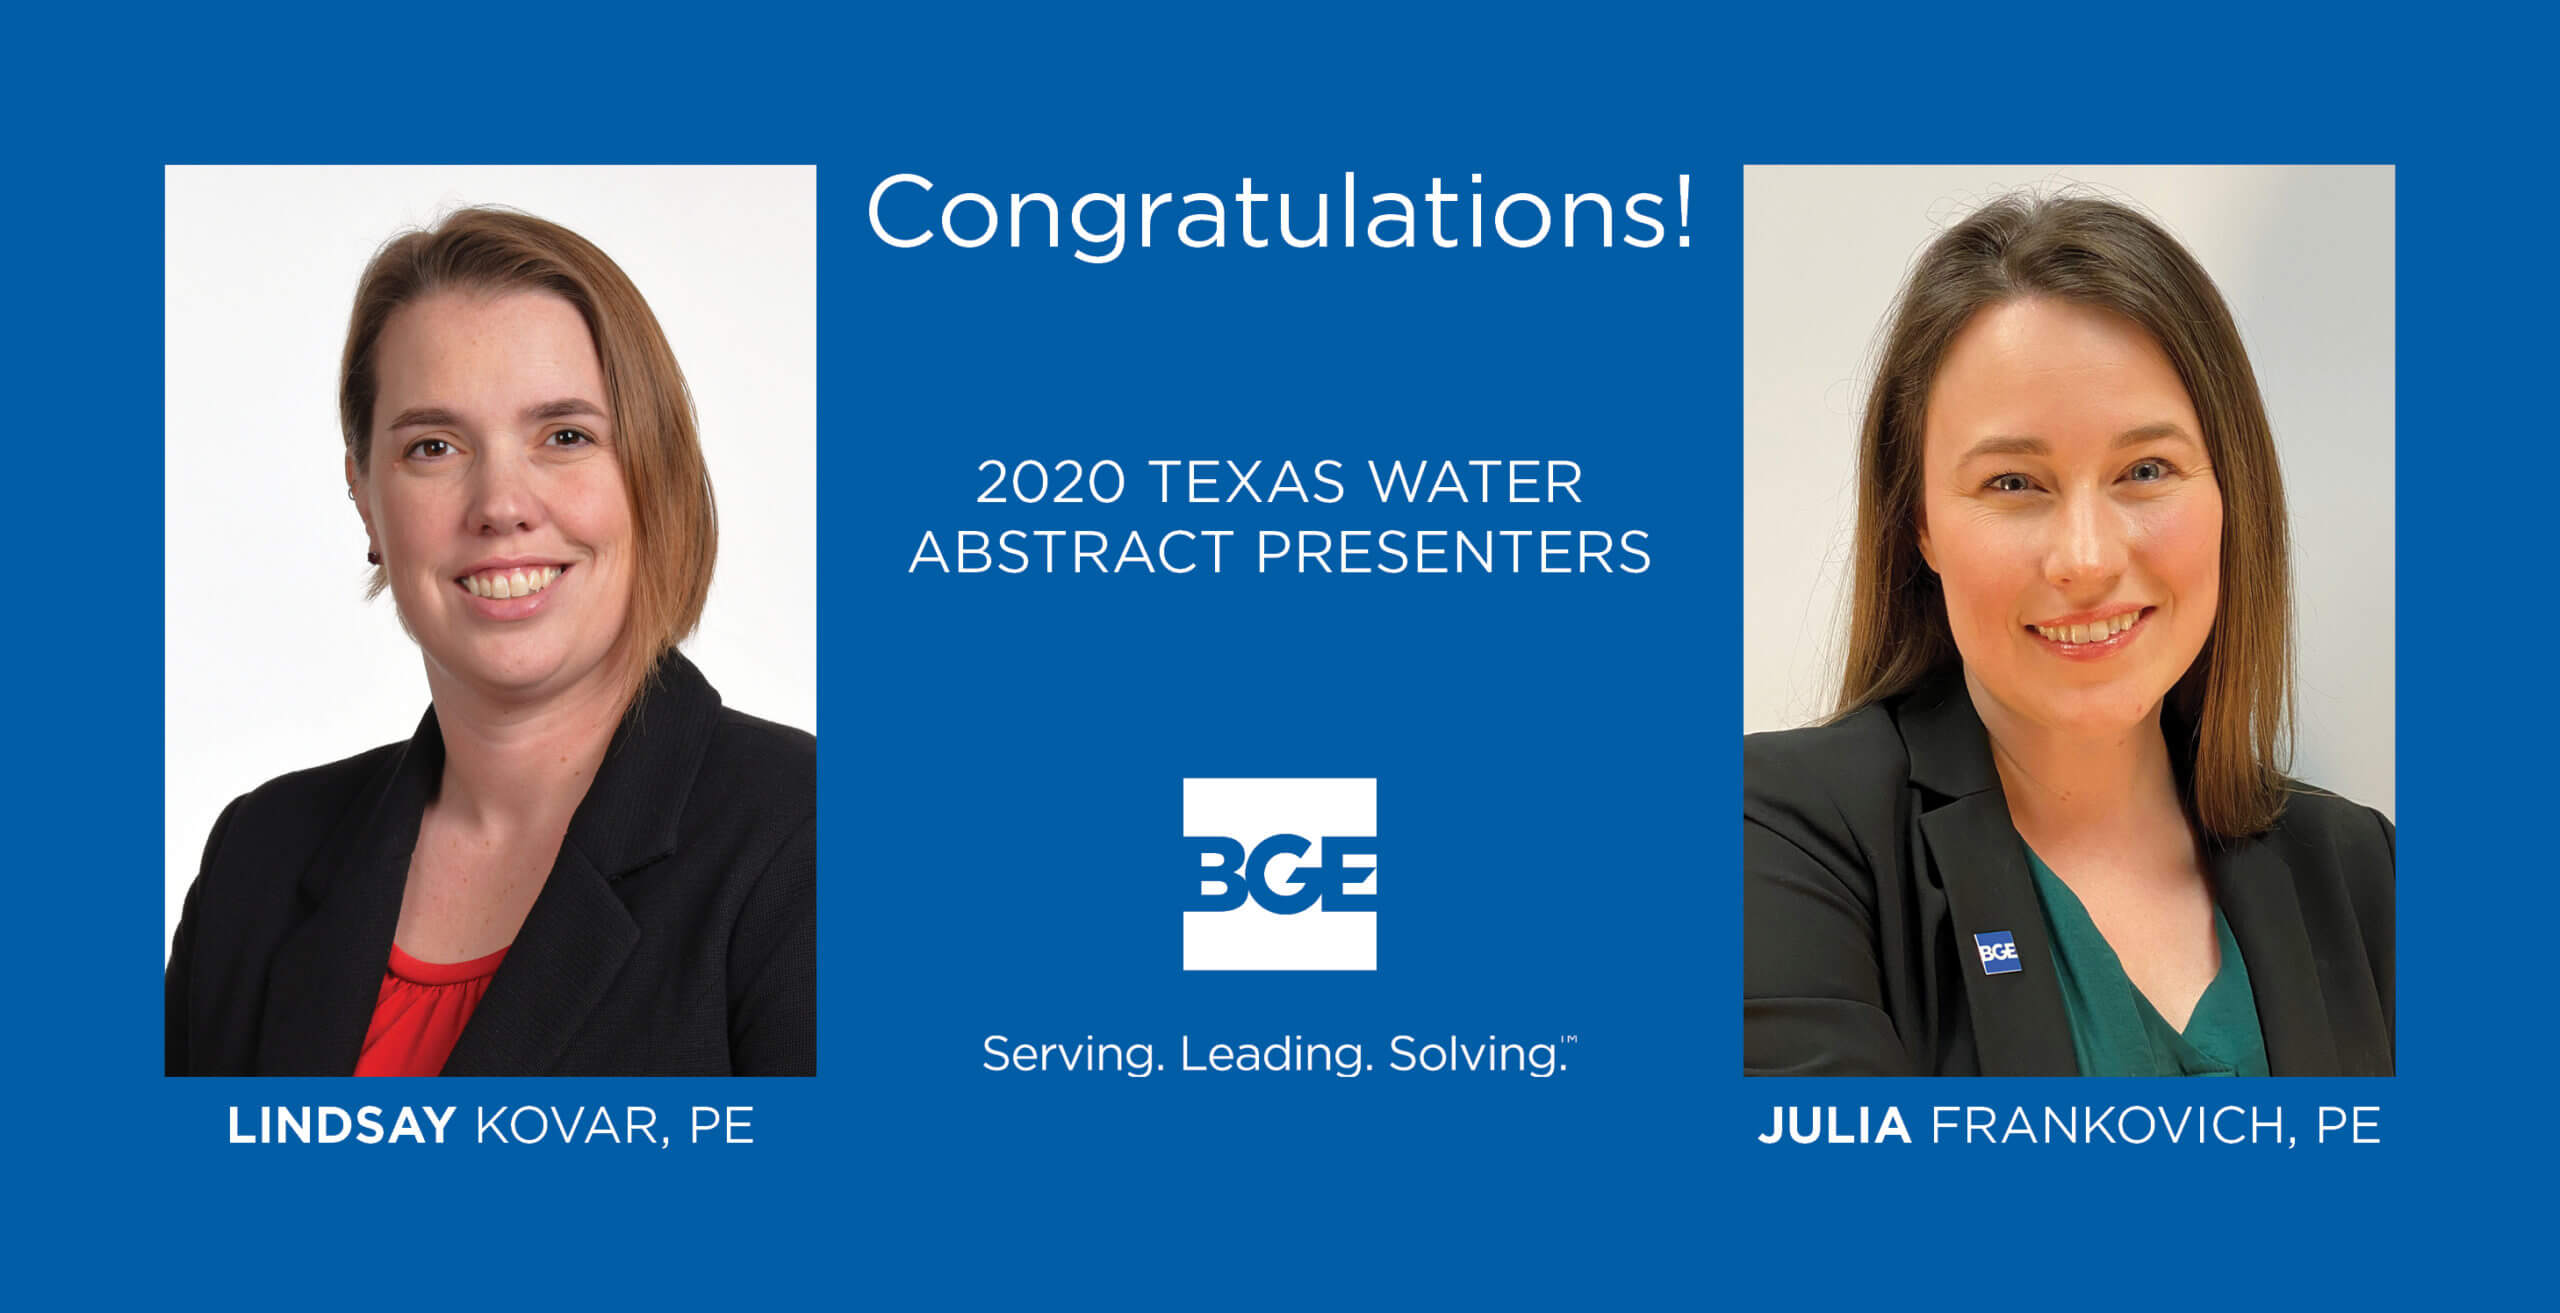 BGE Engineers to Present at Upcoming 2020 Texas Water Conference